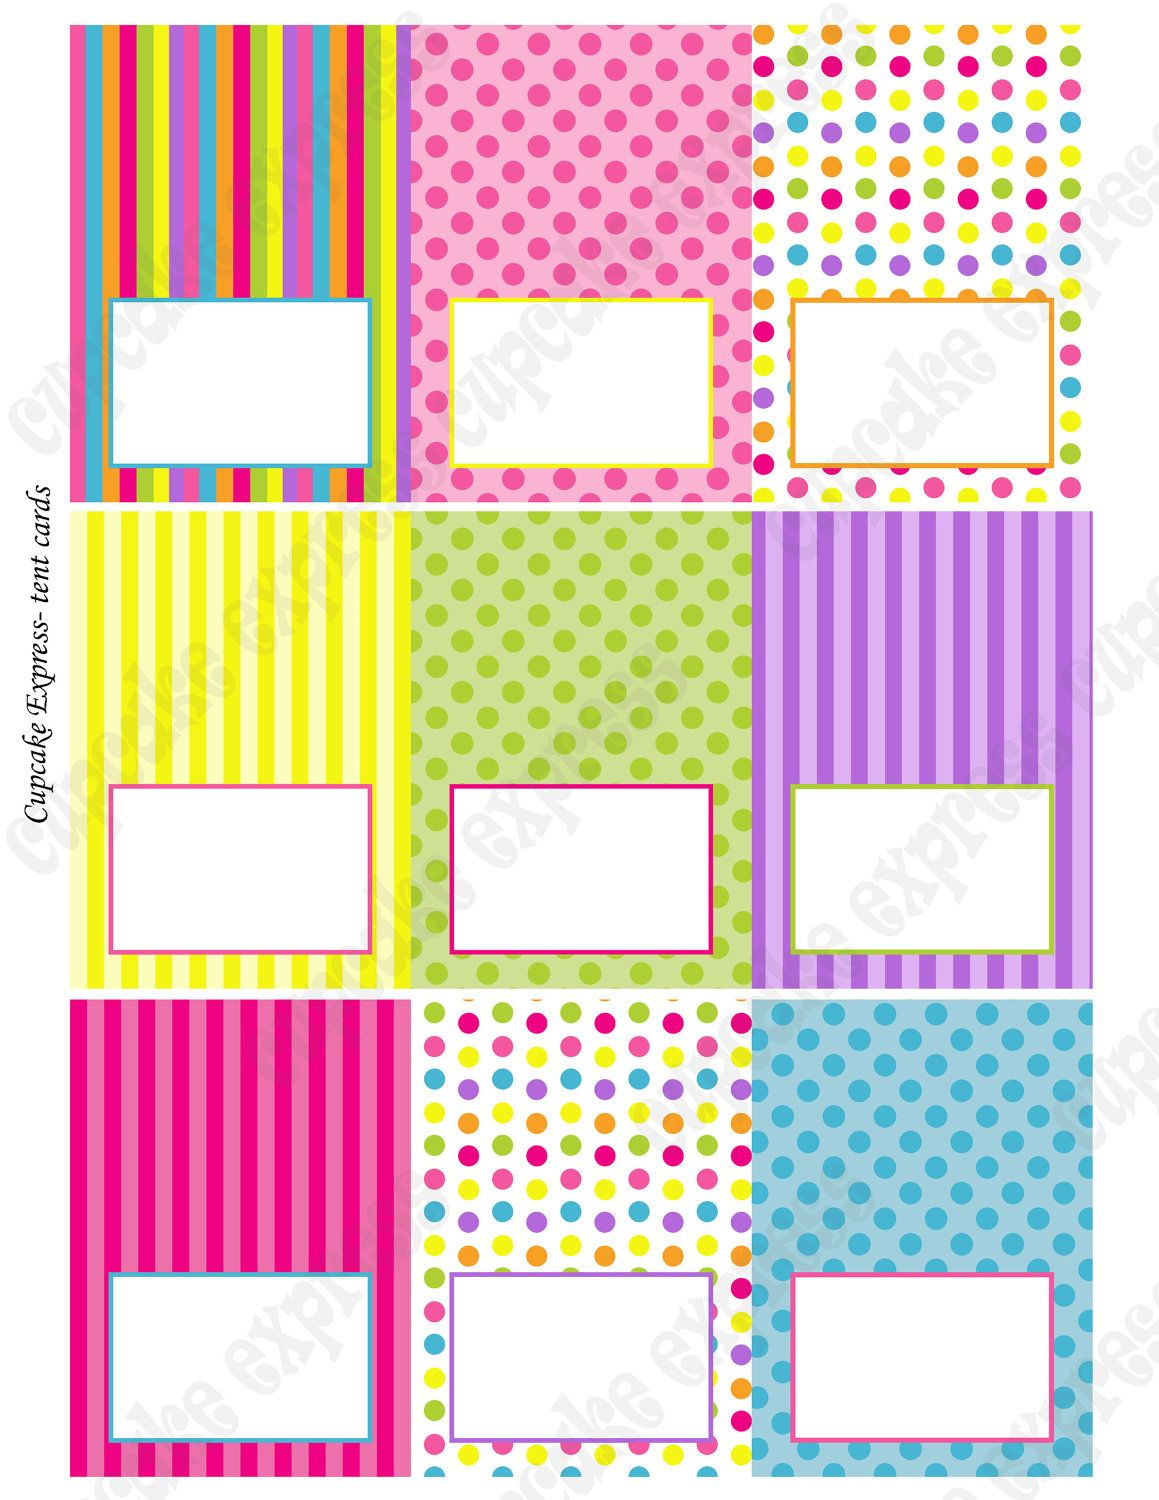 Candy Shoppe Tent cards food labels Birthday Party PRINTABLE pink ...